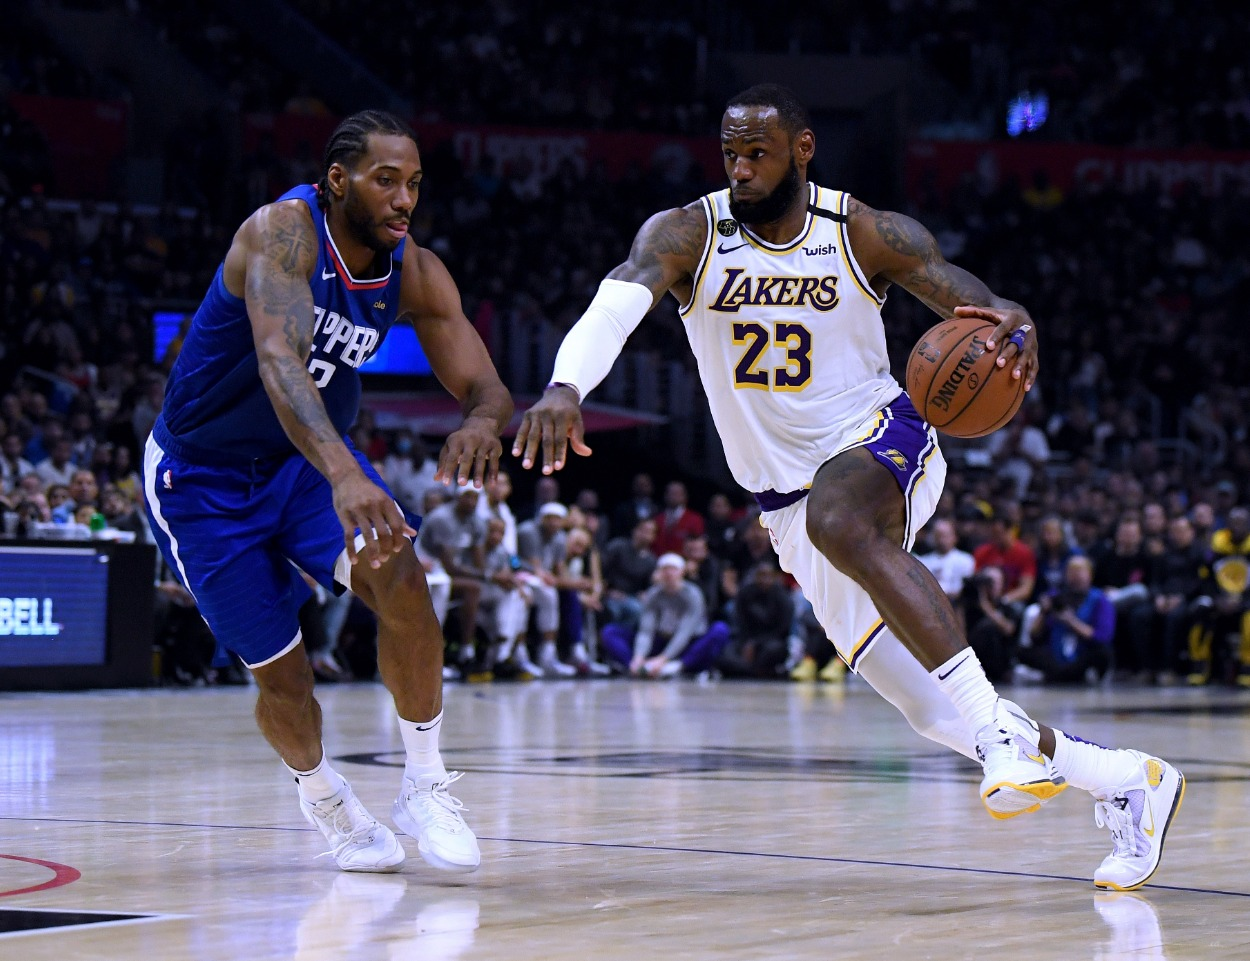 LeBron James and other NBA players could wear a $299 ring that reportedly can track certain health data.